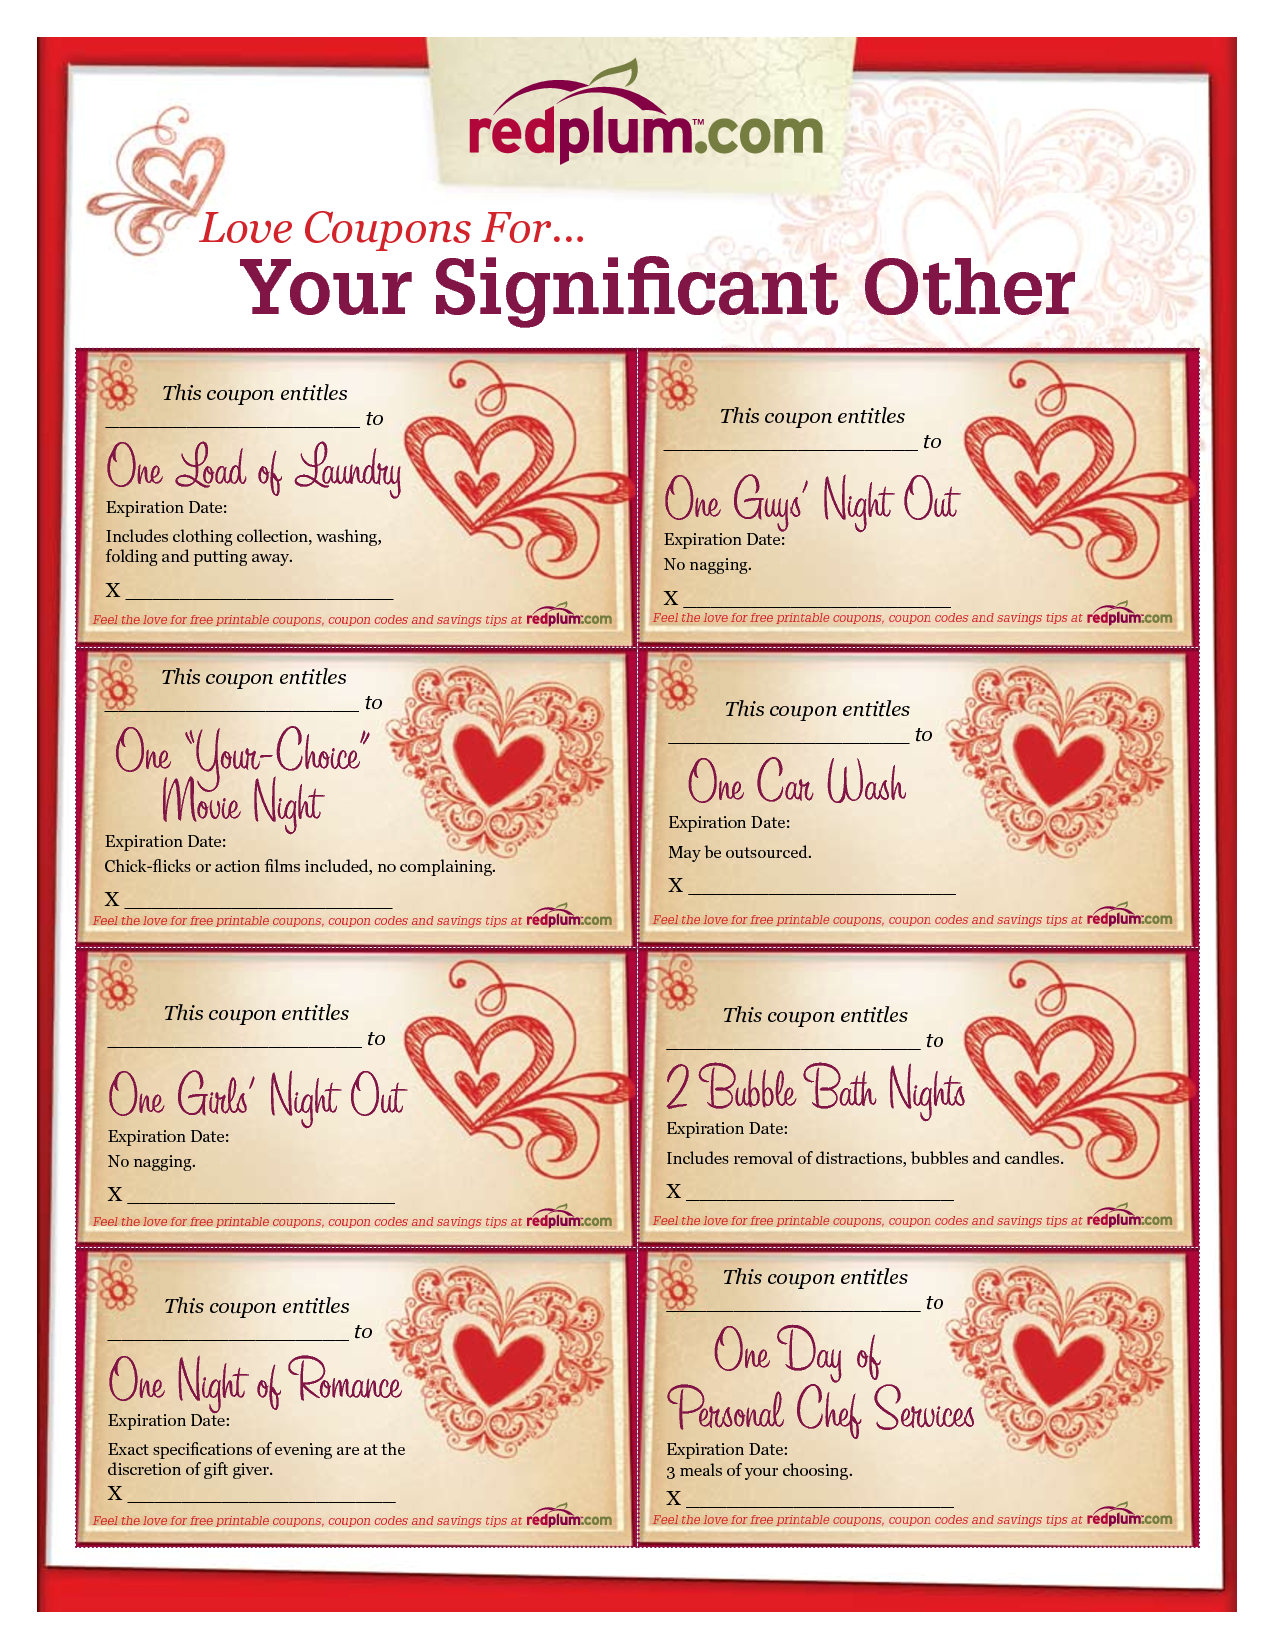 Top result 50 inspirational coupon book template for husband 7e59d62ade248f060340d2388d4f5257 top result 50 inspirational coupon book template for husband photography 2018 hht5 yelopaper Image collections